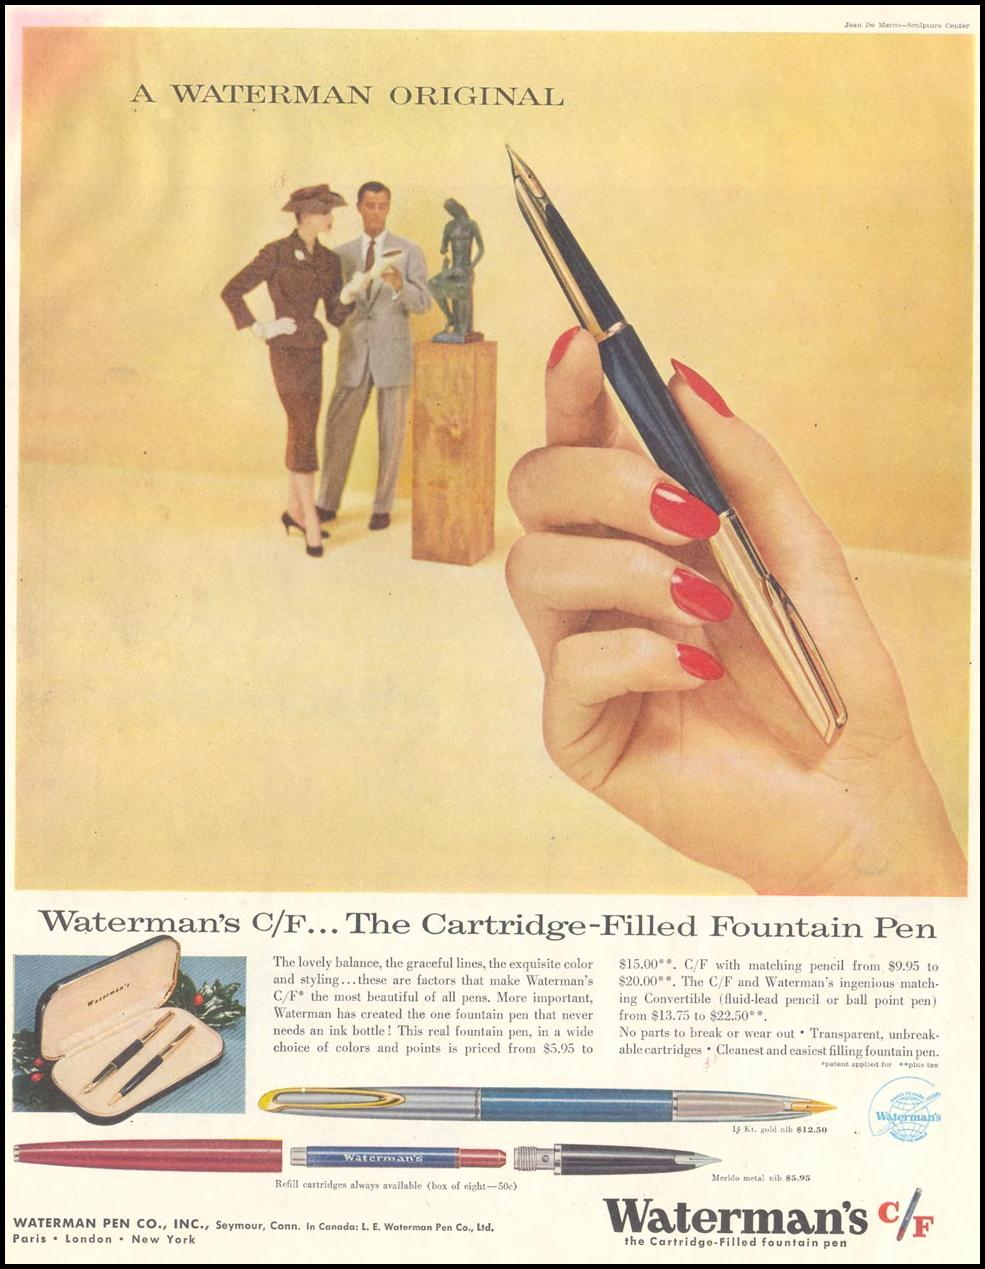 WATERMAN'S CARTRIDIGE-FILLED FOUNTAIN PEN SATURDAY EVENING POST 12/10/1955